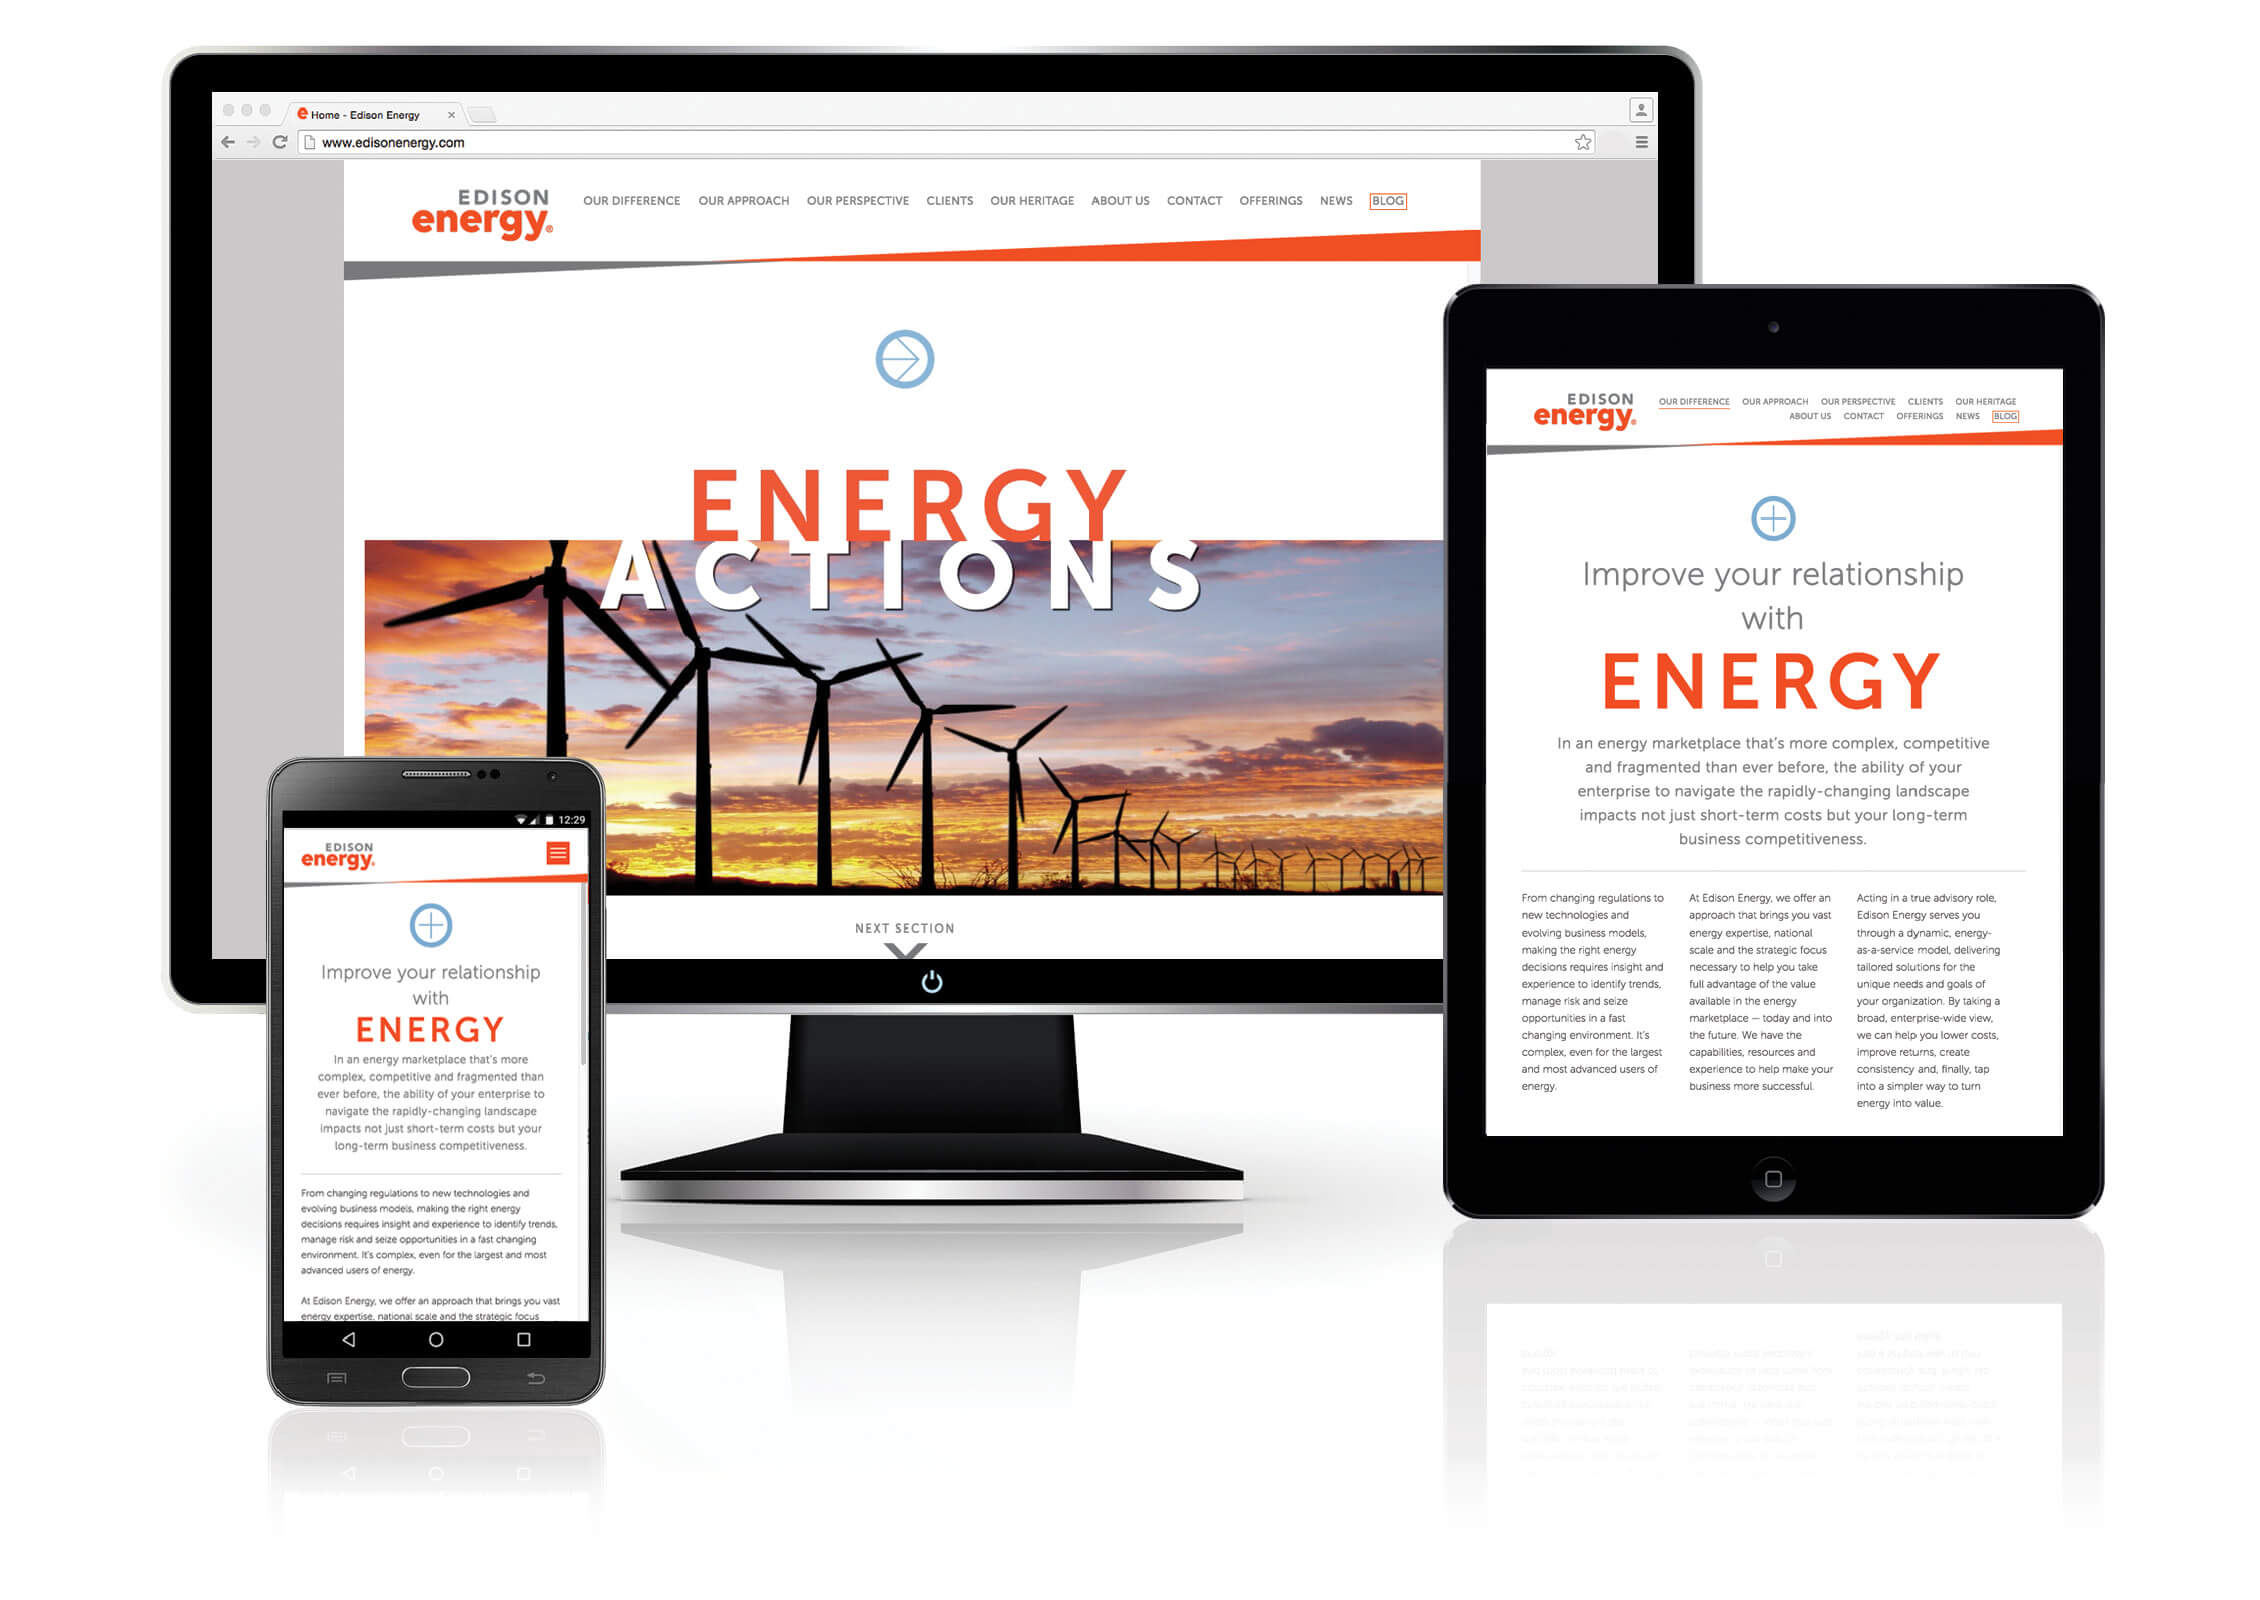 new edison energy website image